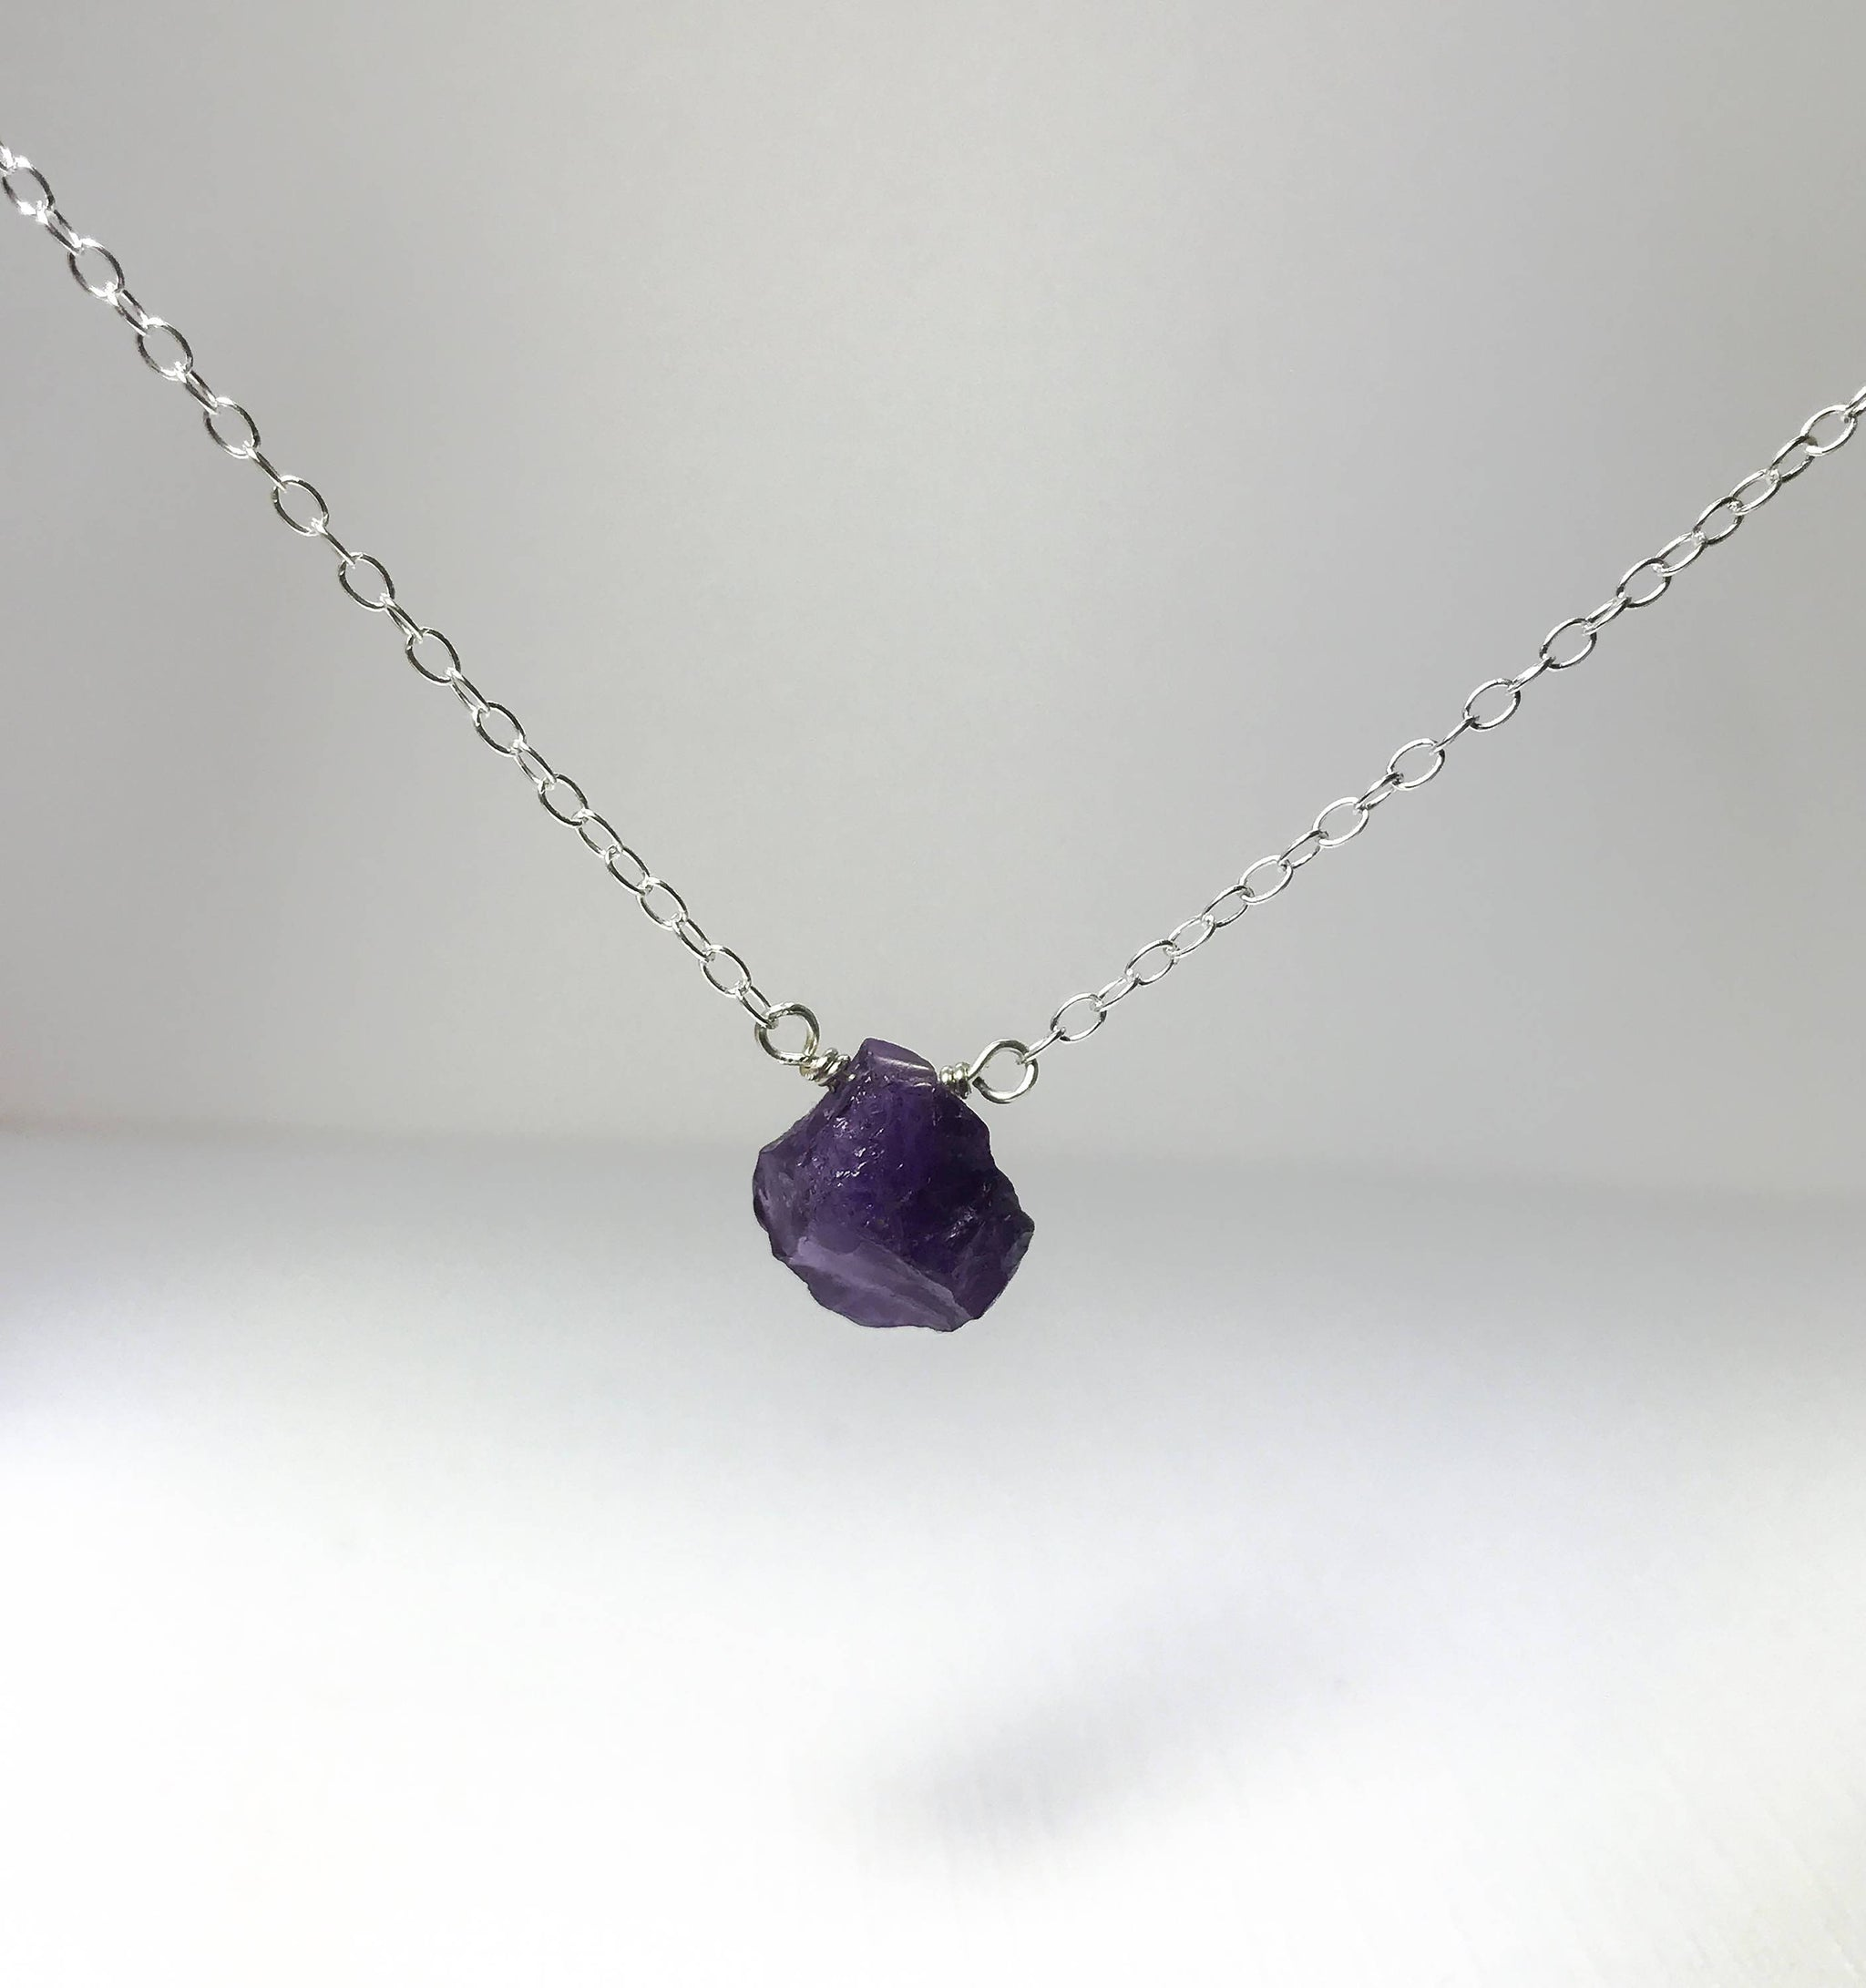 sf us quartz itm qgem amethyst image stone healing loading crystal irregular handmade necklace is pendant raw